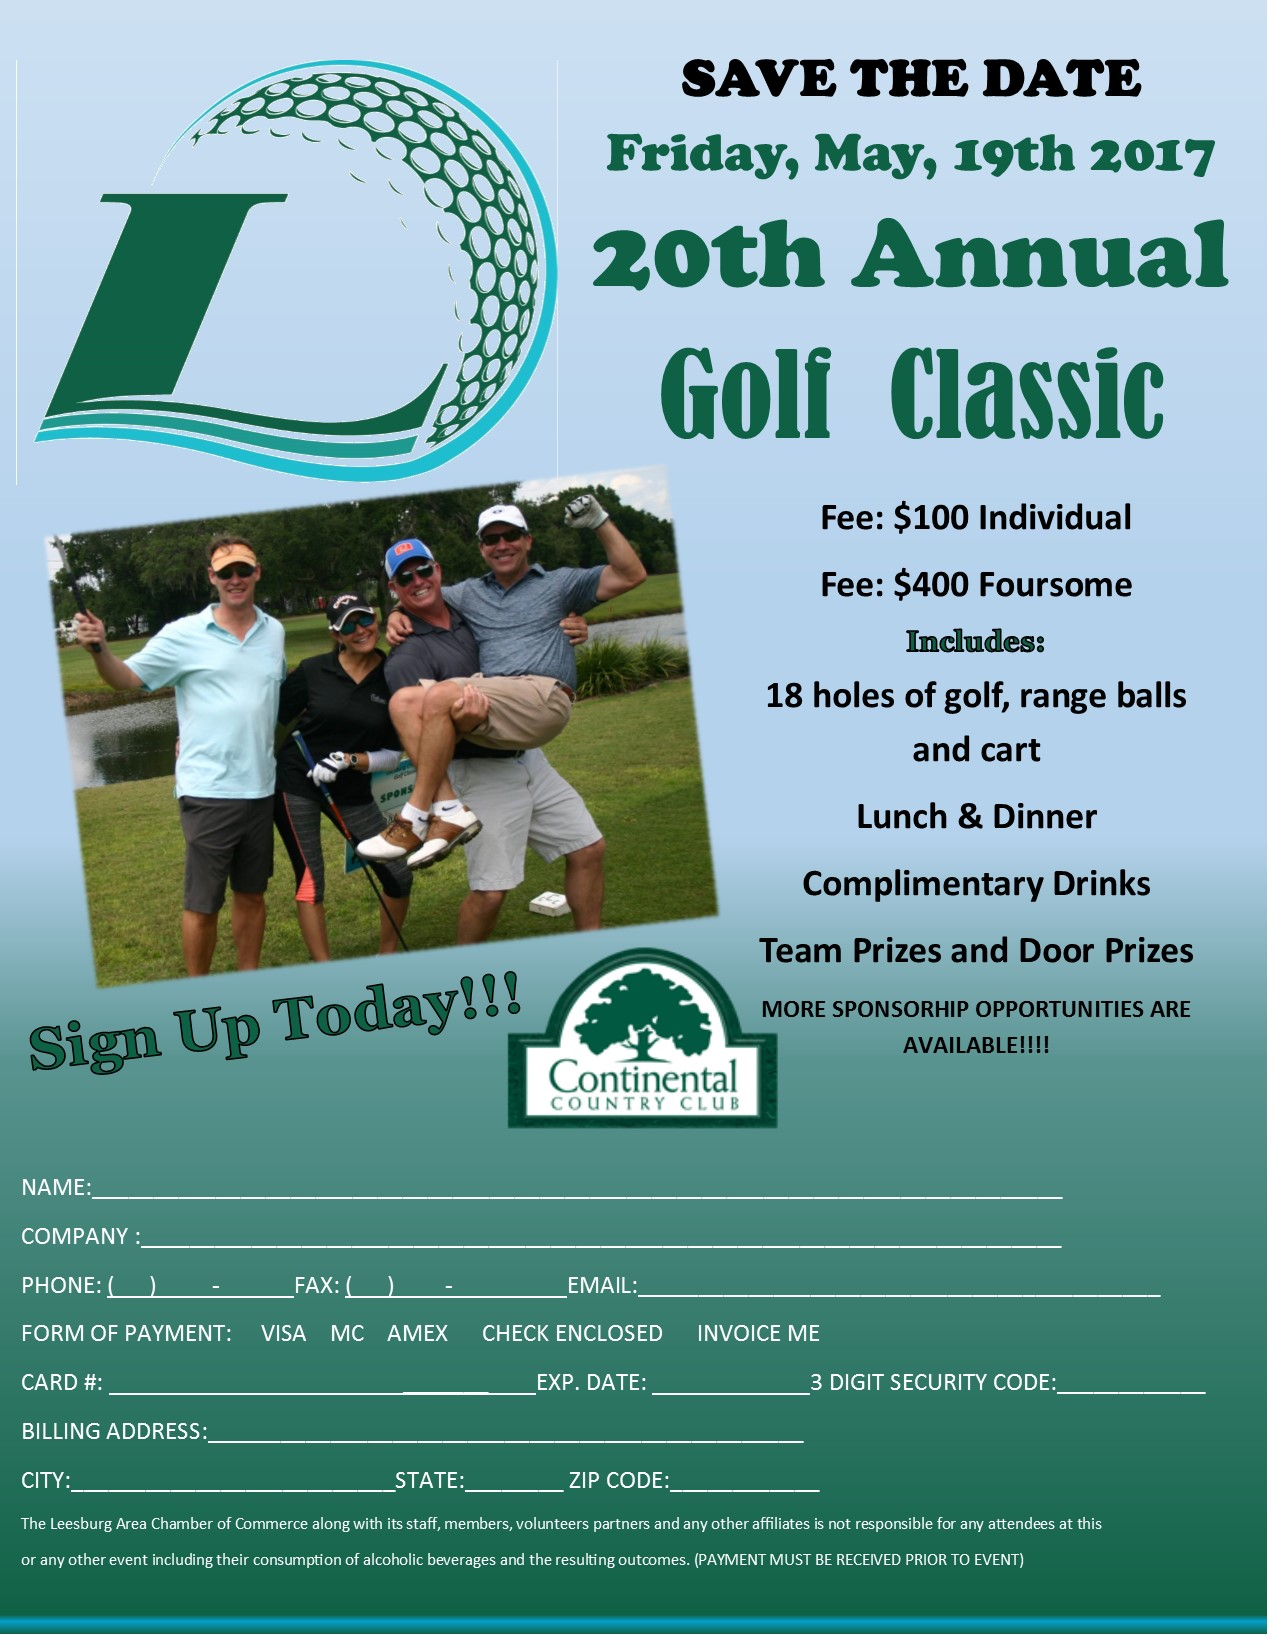 Golf Classic Save the Date and SignUp